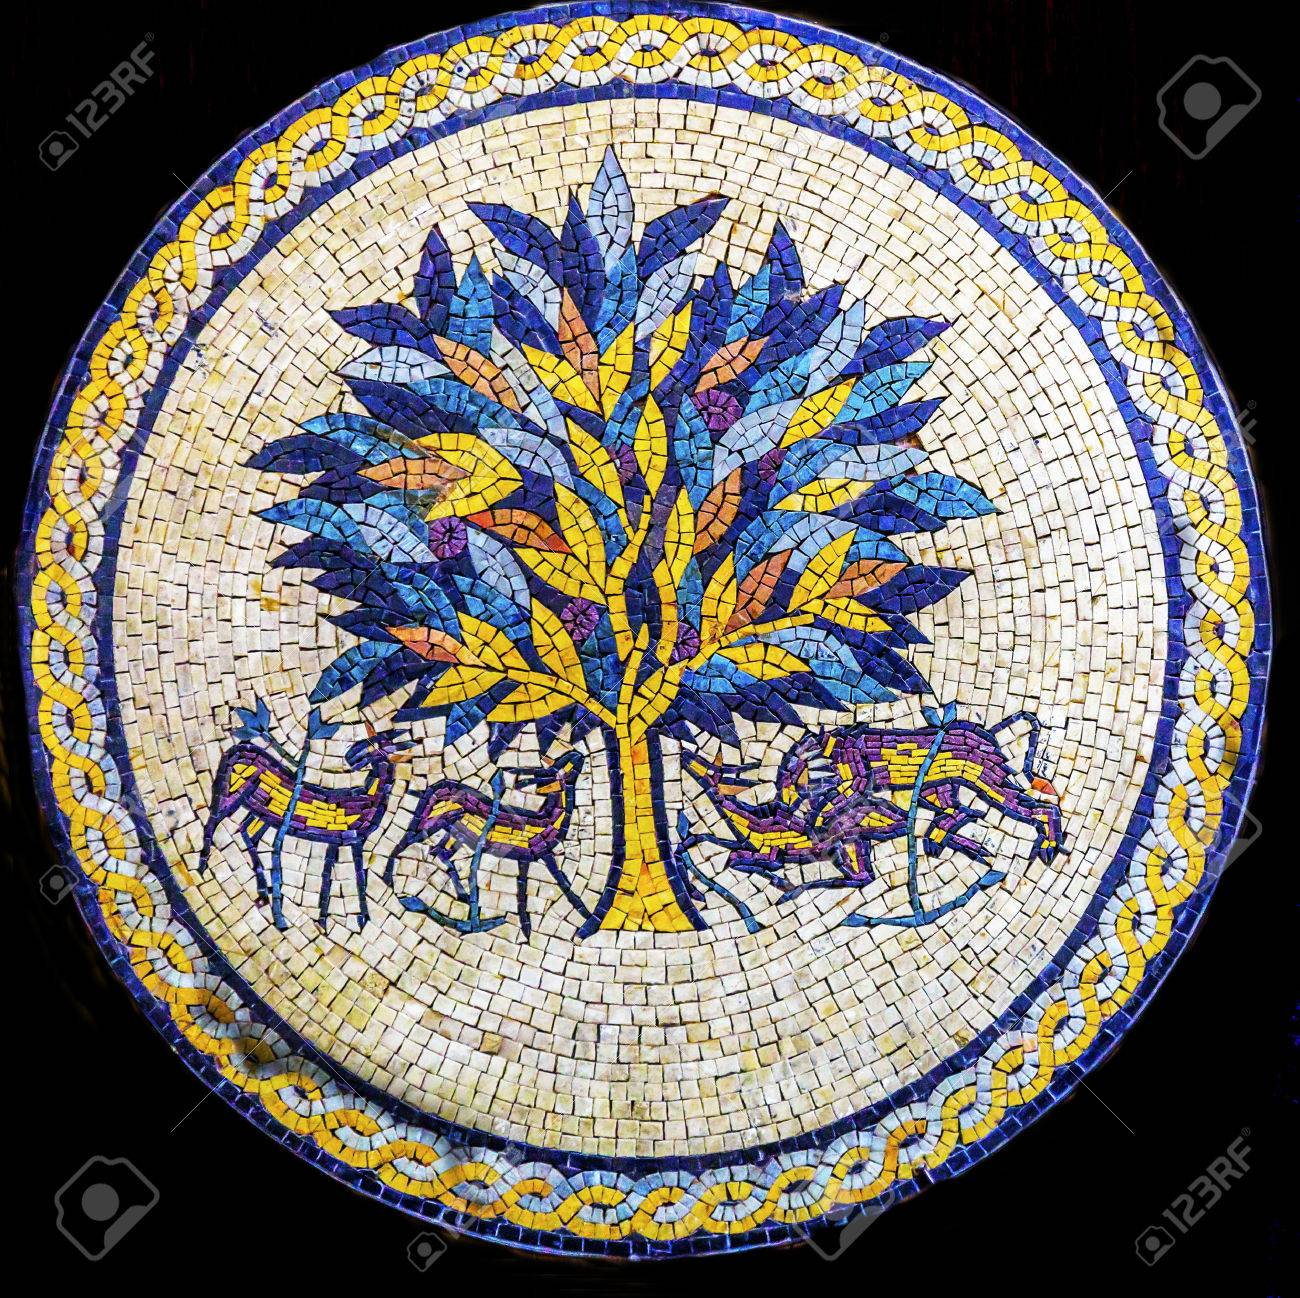 info for more photos to buy Tree of Life Mosaic Madaba Jordan. Tree of Life is famous ancient..